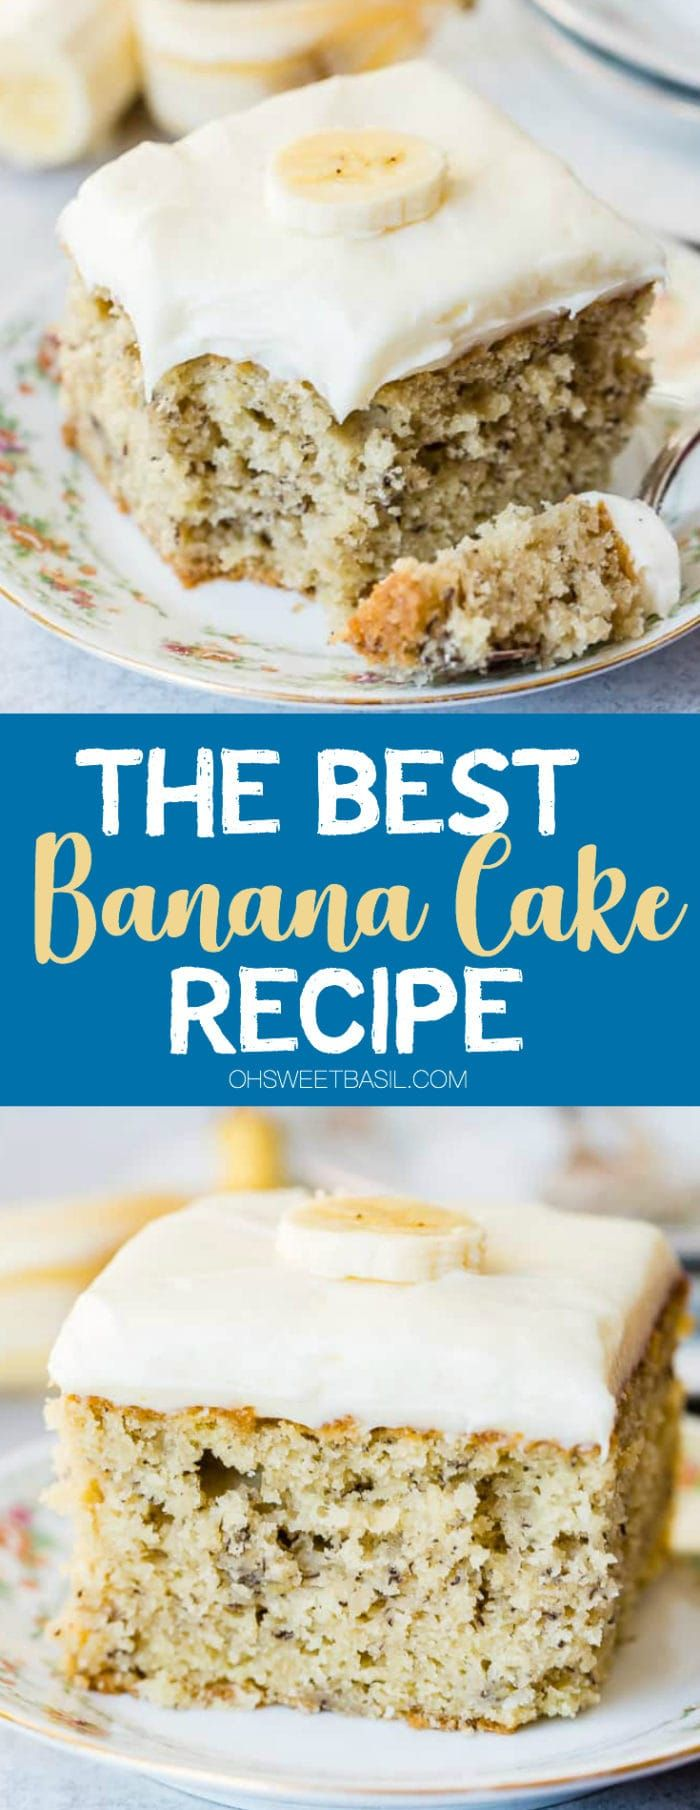 The BEST Banana Cake with Cream Cheese Frosting - Oh Sweet Basil